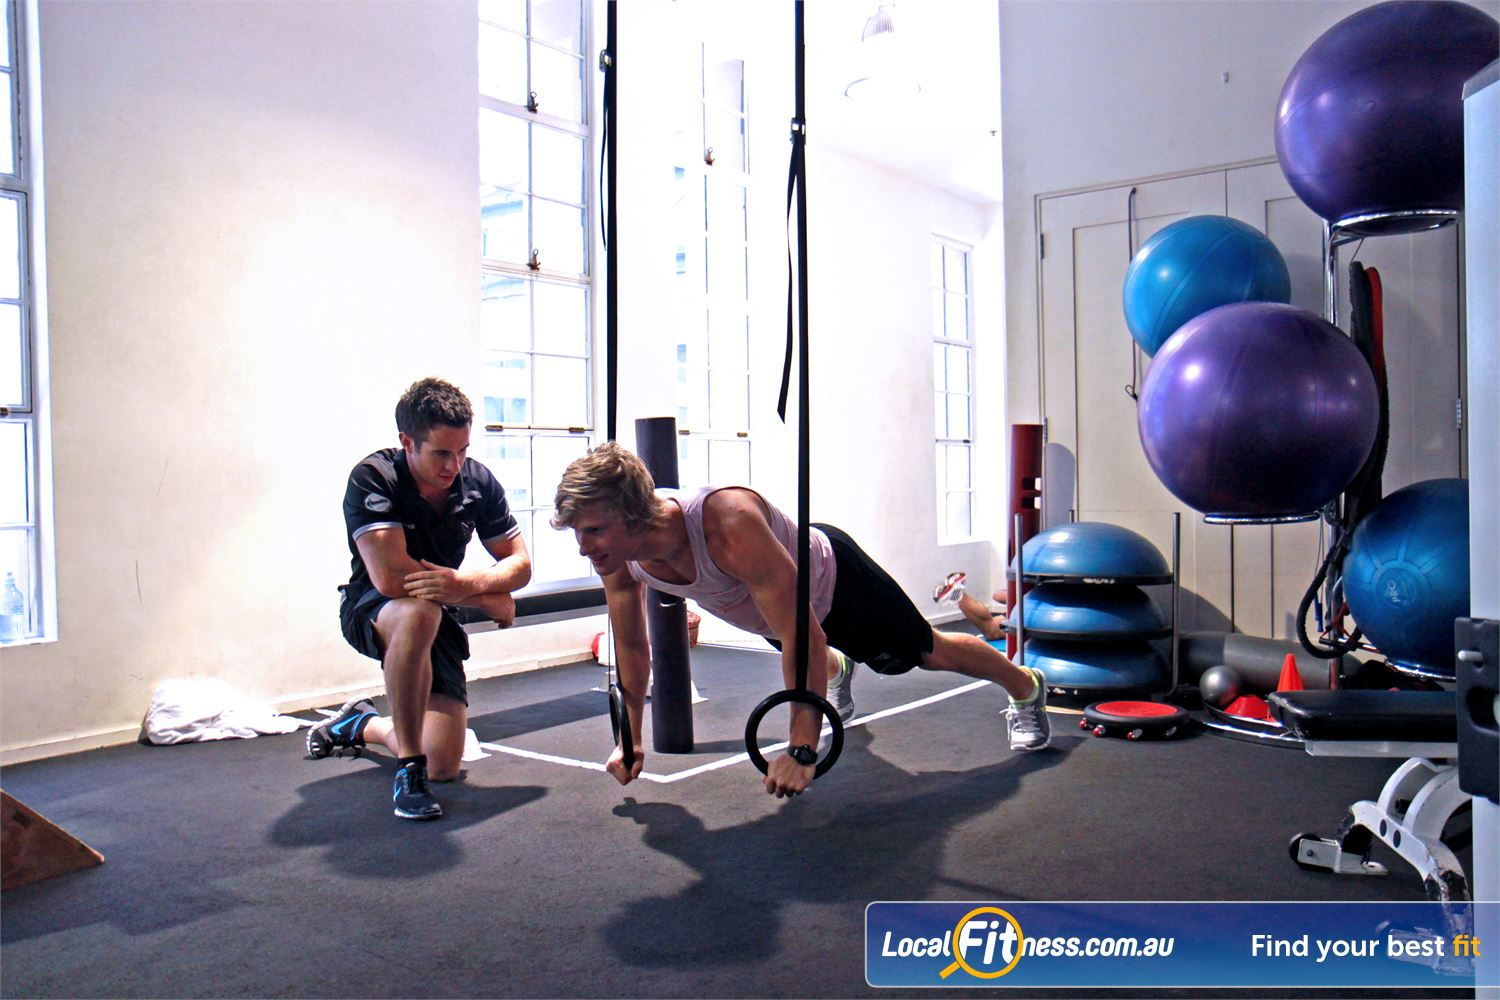 Goodlife Health Clubs Martin Place Near Alexandria Mc Our Sydney personal training team are knowledgeable in strength training.